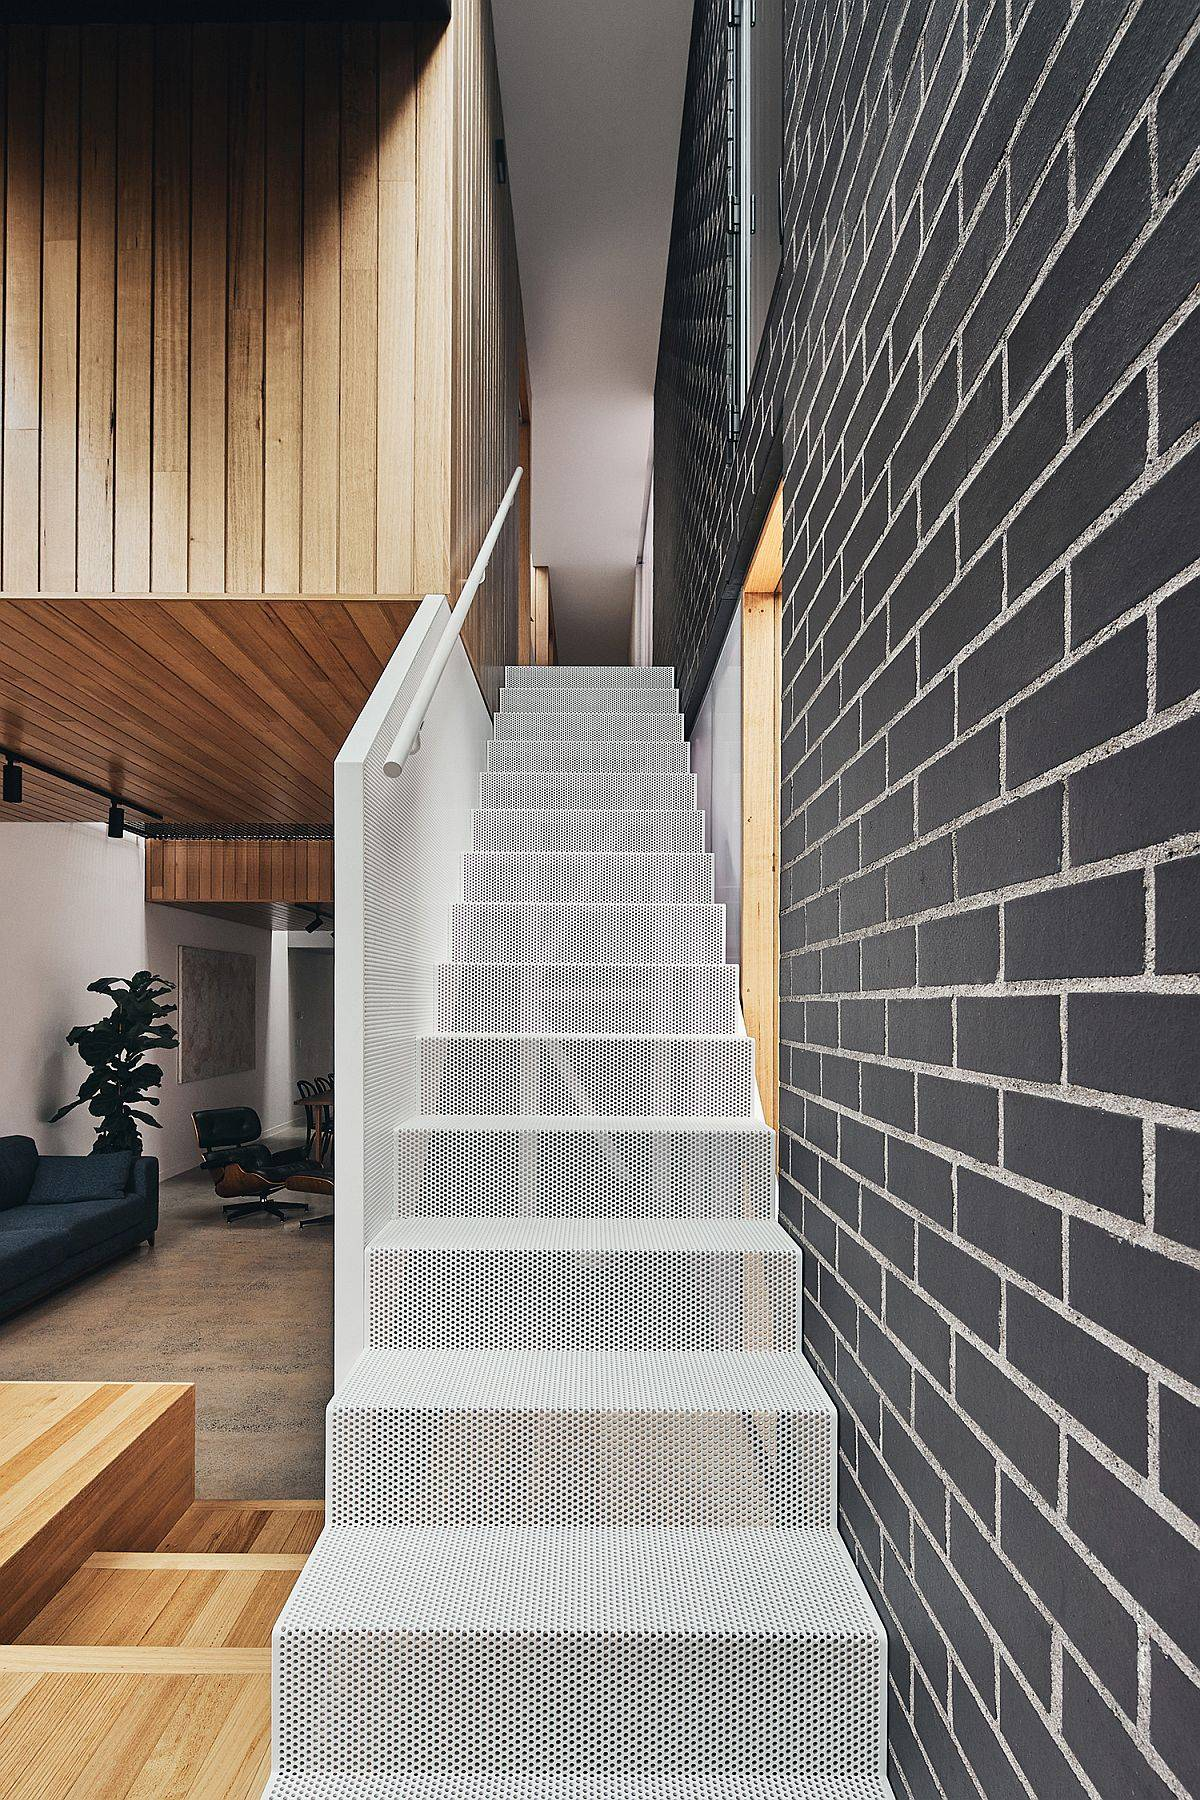 Wiry mesh-styled staircase leads to the top level of the home with bedrooms